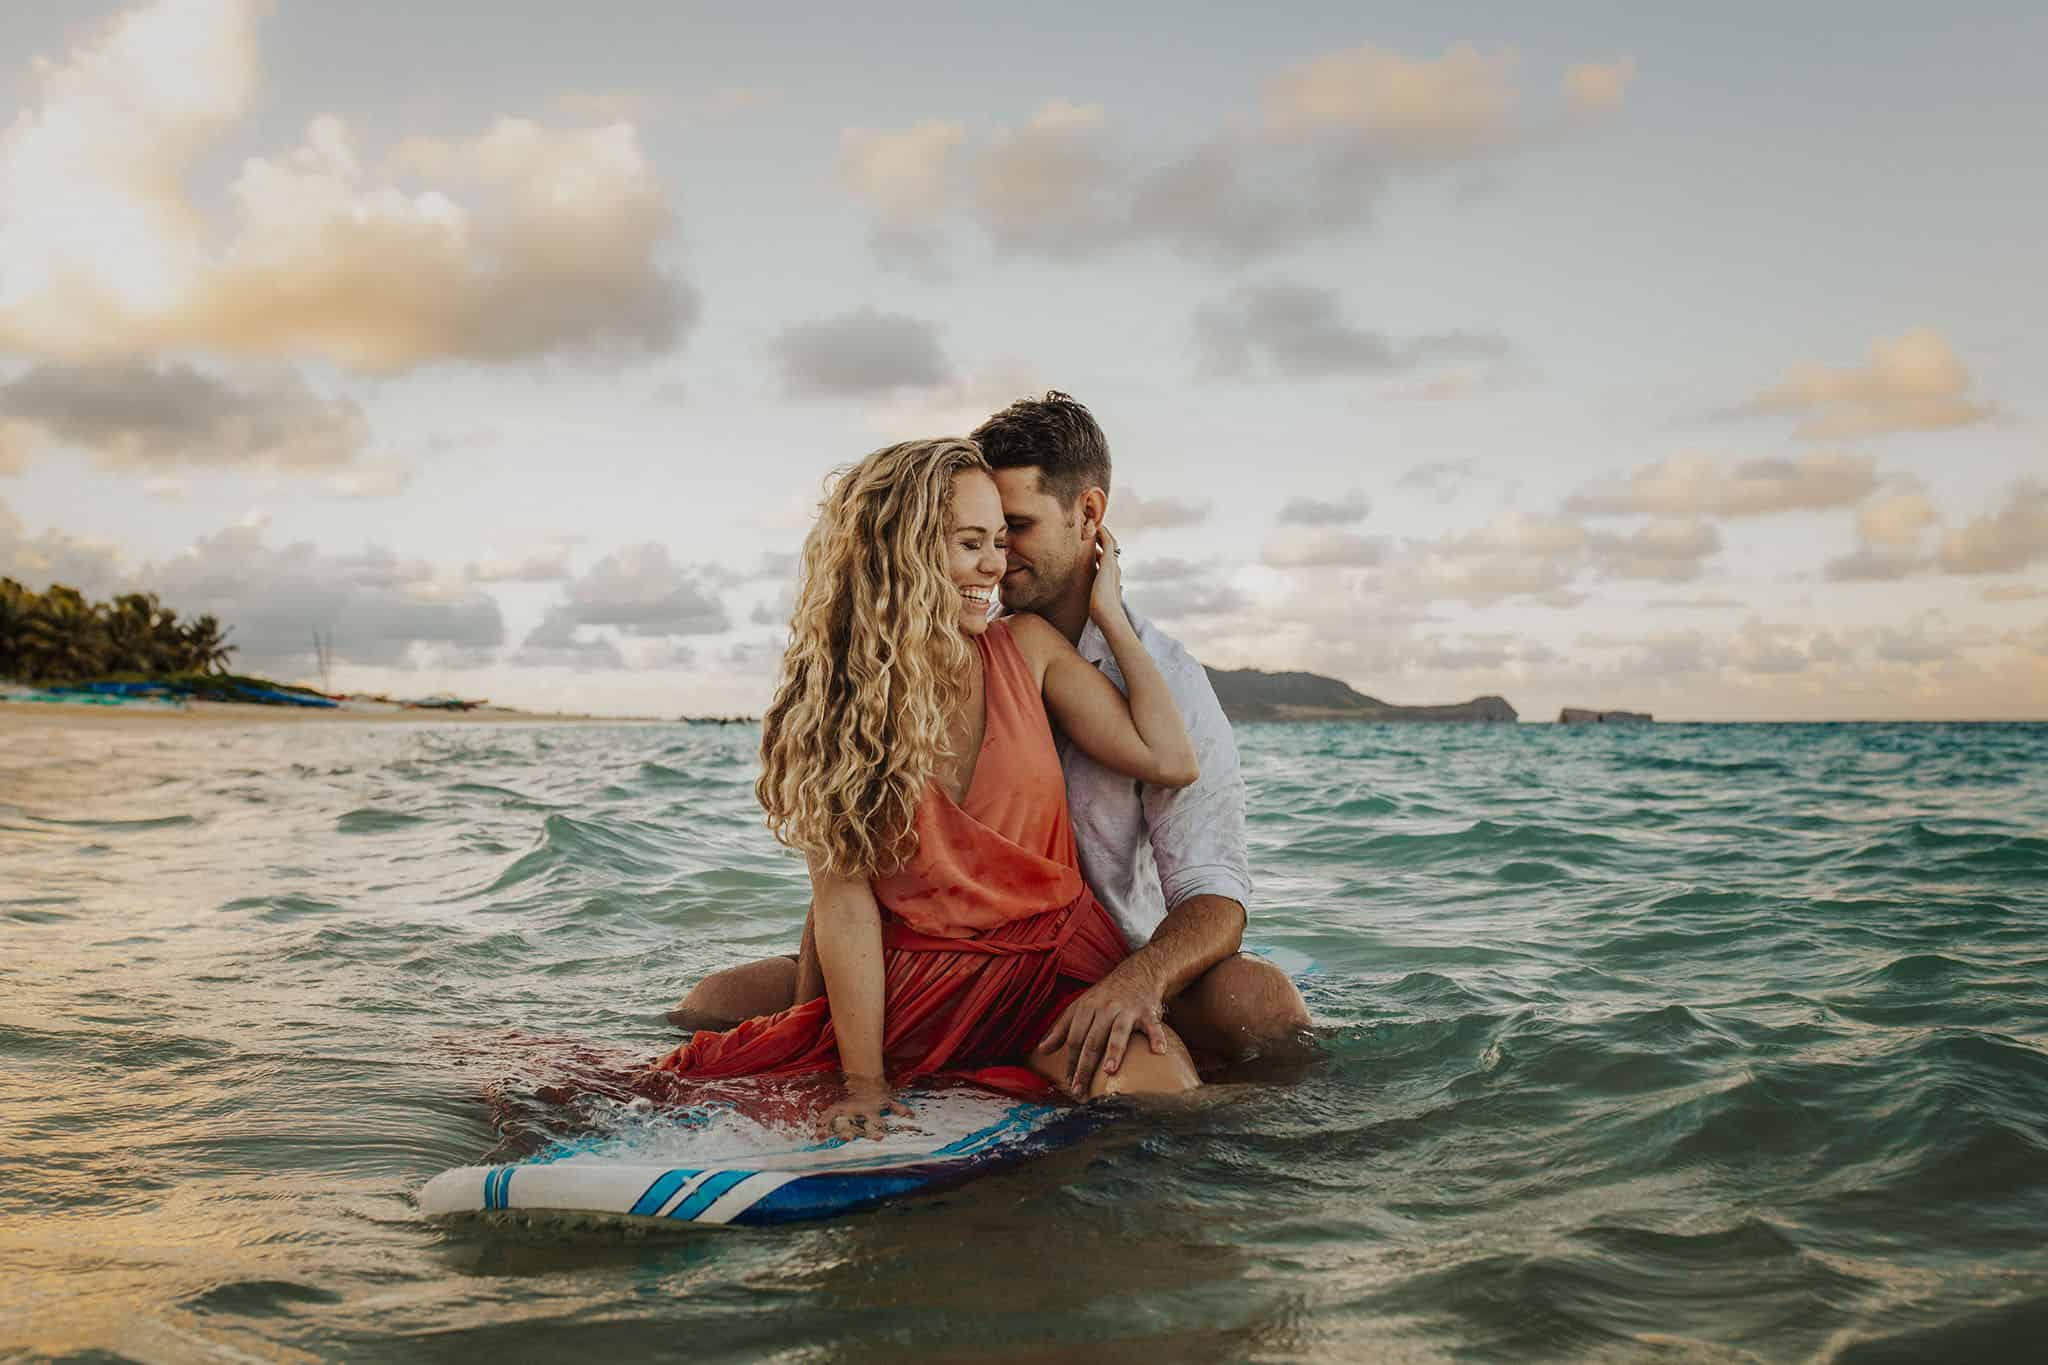 Couple Poses on a surfboard in the ocean